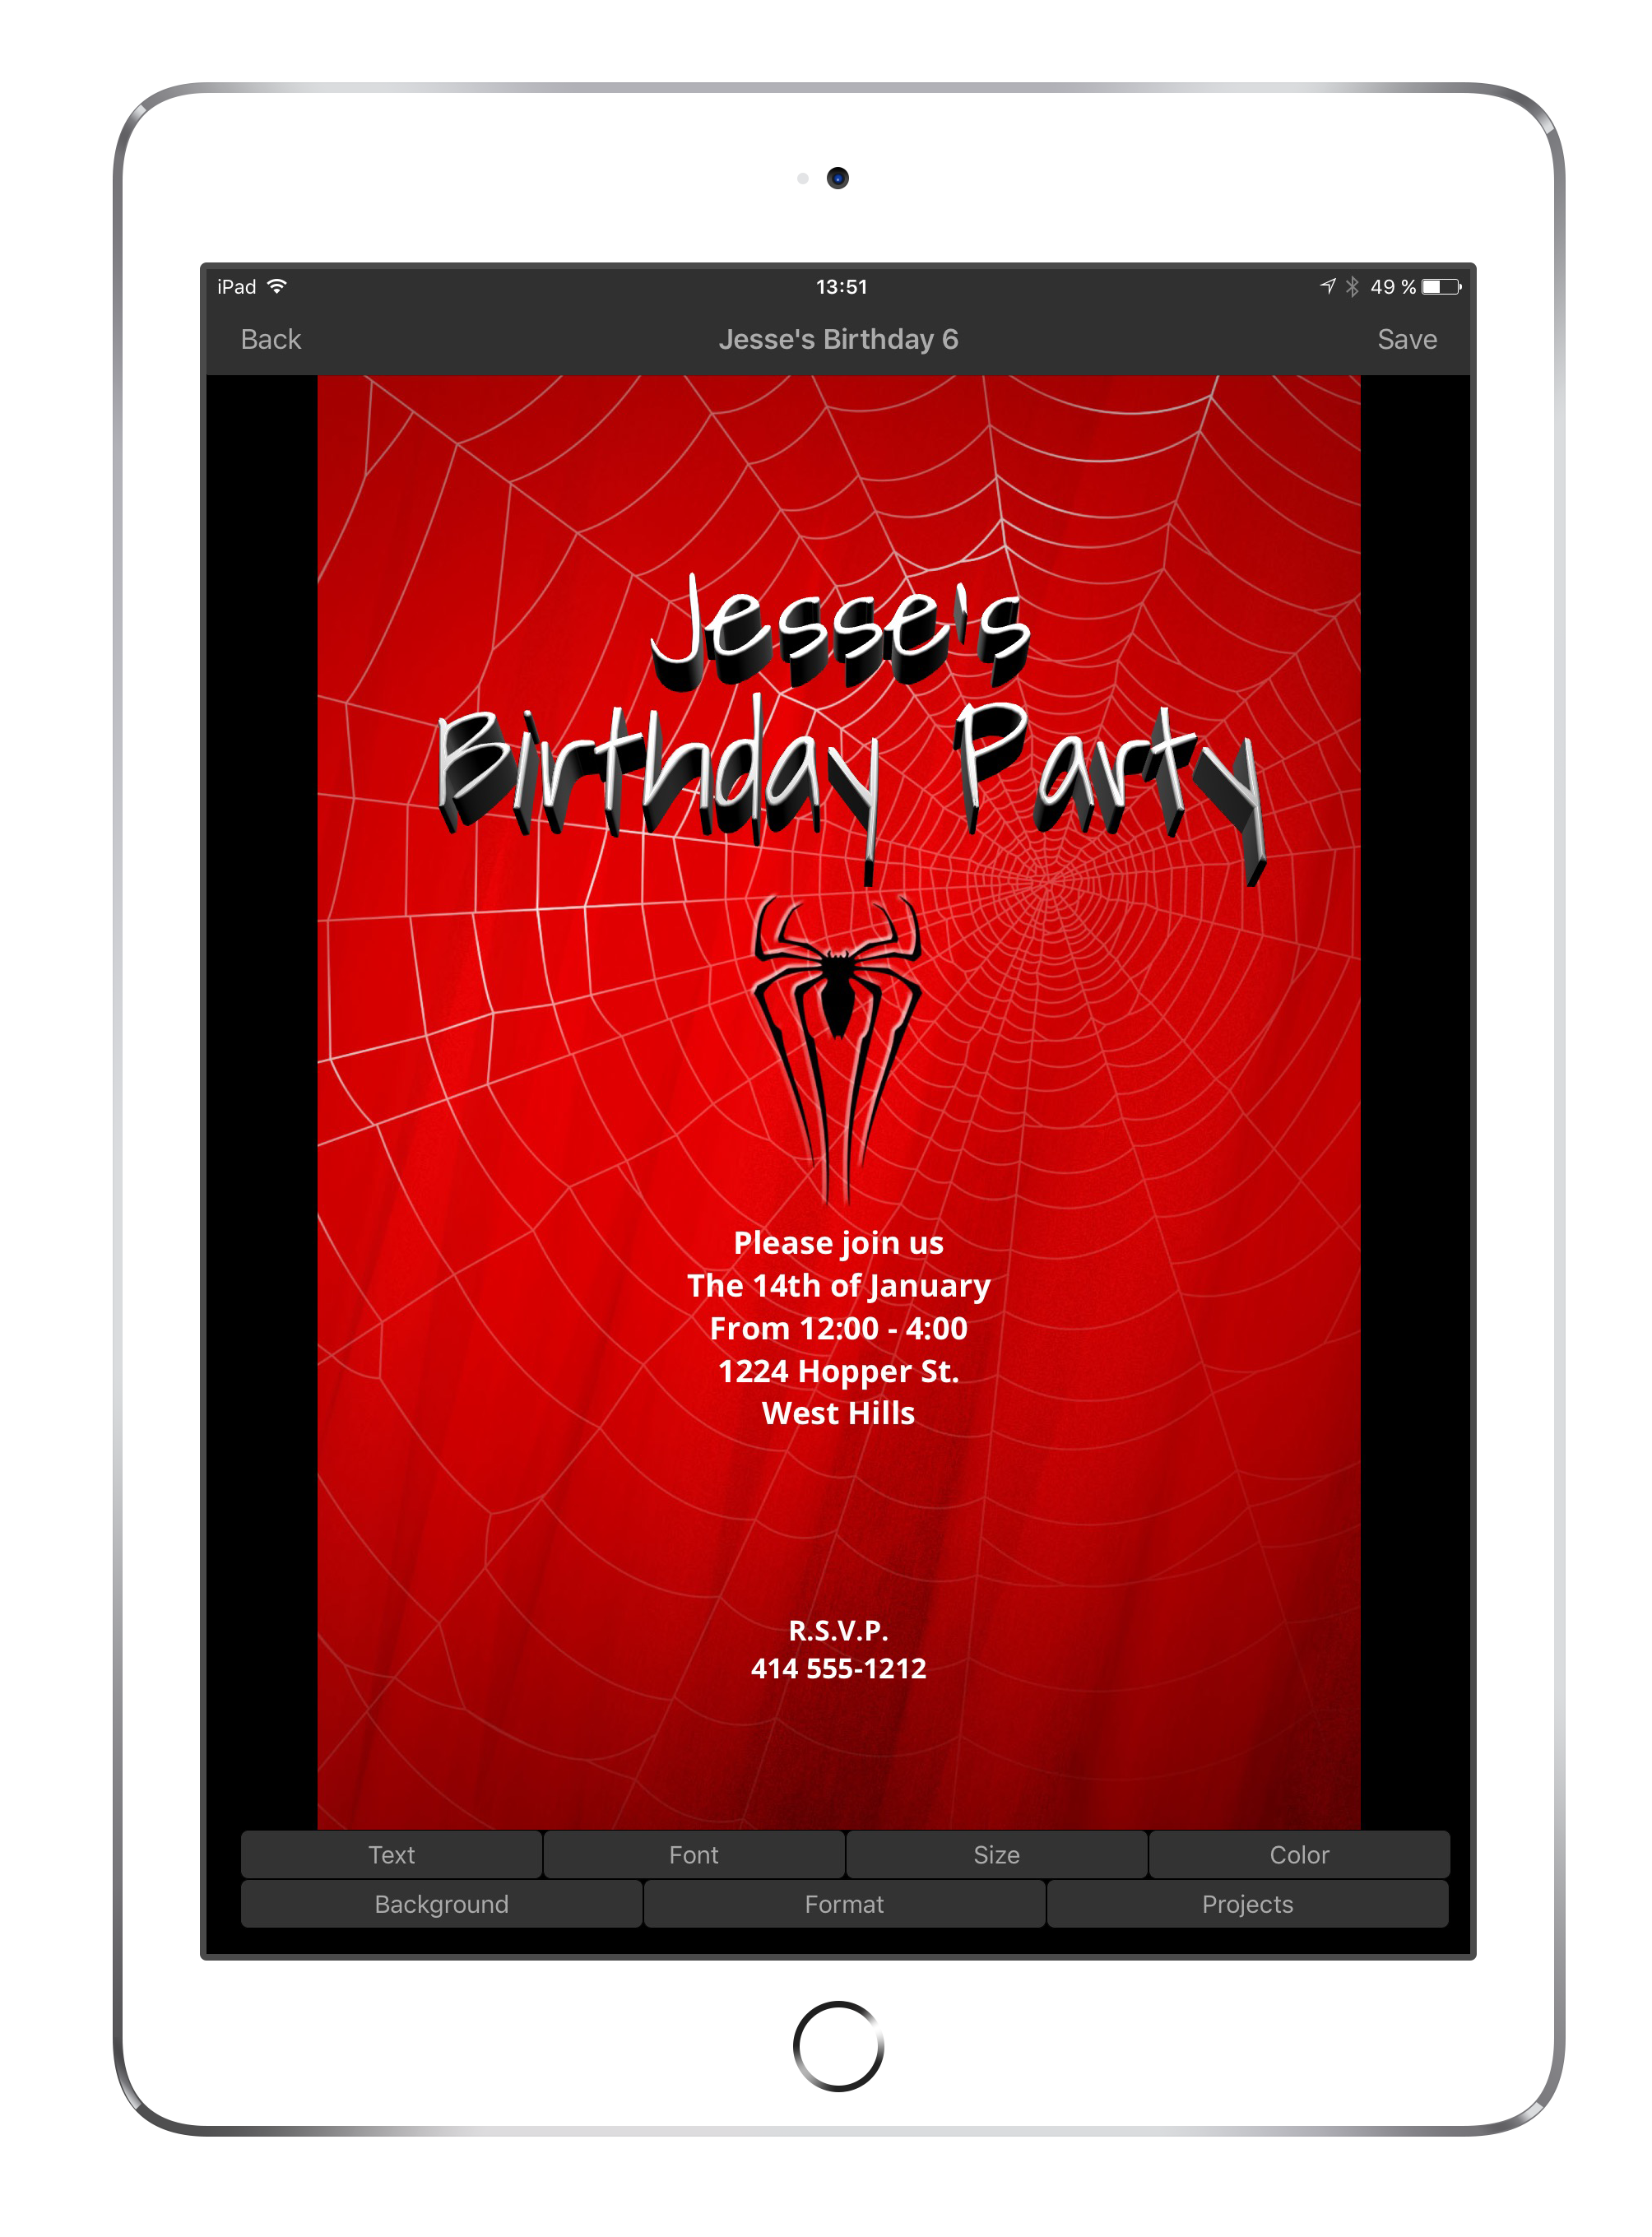 Awesome Birthday Invite Maker Crest - Invitations and Announcements ...